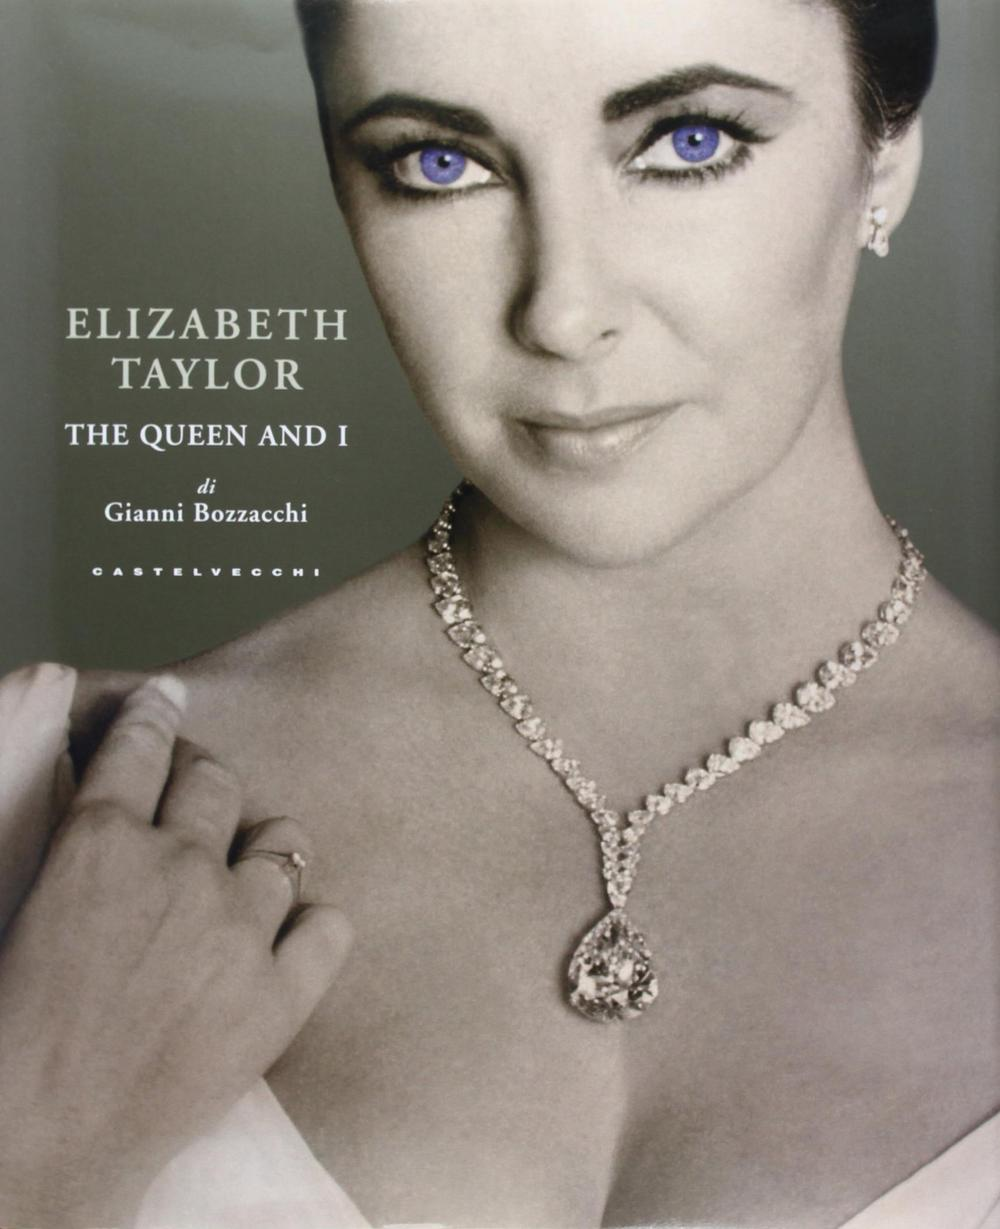 ELIZABETH TAYLOR. THE QUEEN AND I - 9788868260552